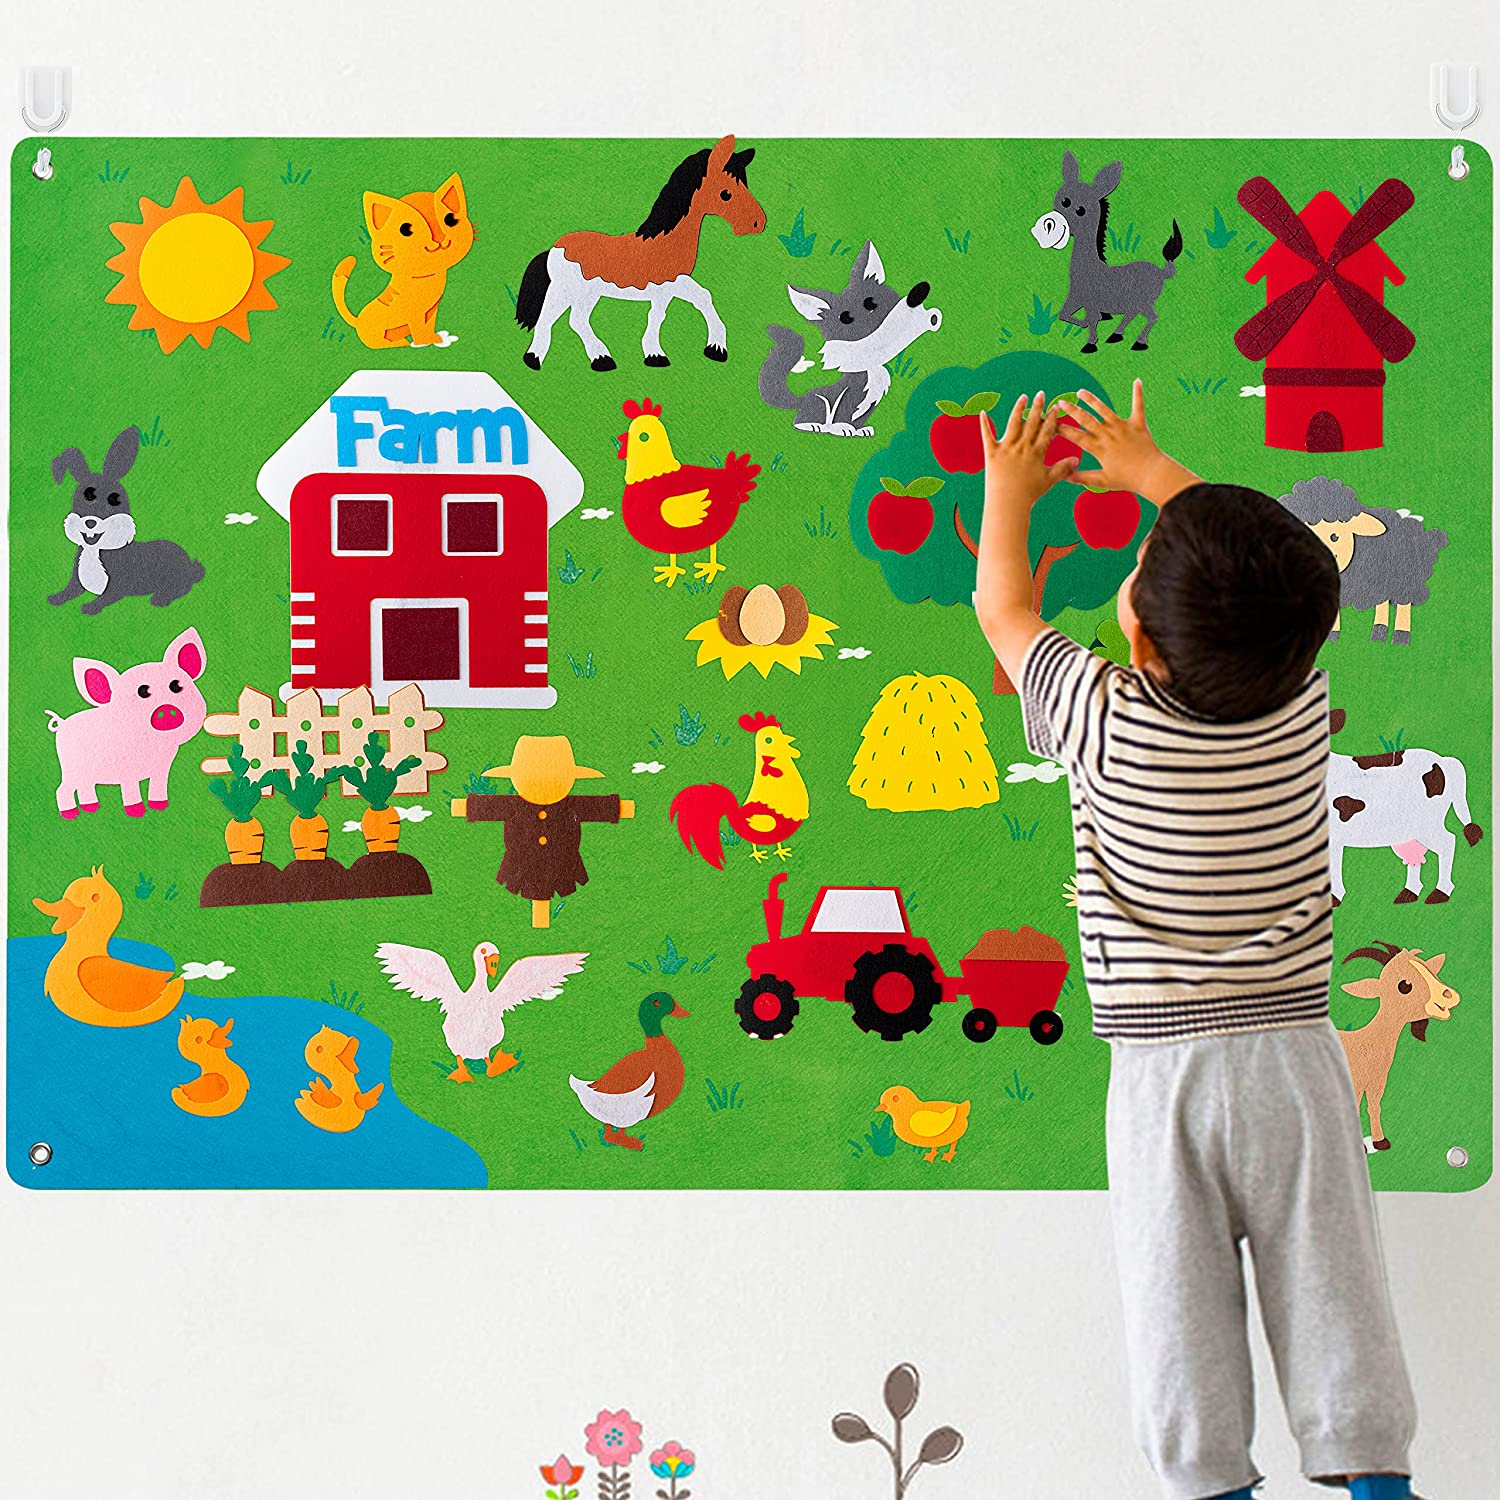 WATINC Farm Animals Felt Story Board Set 3.5Ft 38Pcs Preschool Farmhouse Themed Storytelling Flannel Barnyard Domestic Livestock Early Learning Interactive Play Kit Wall Hanging Gift for Toddlers Kids